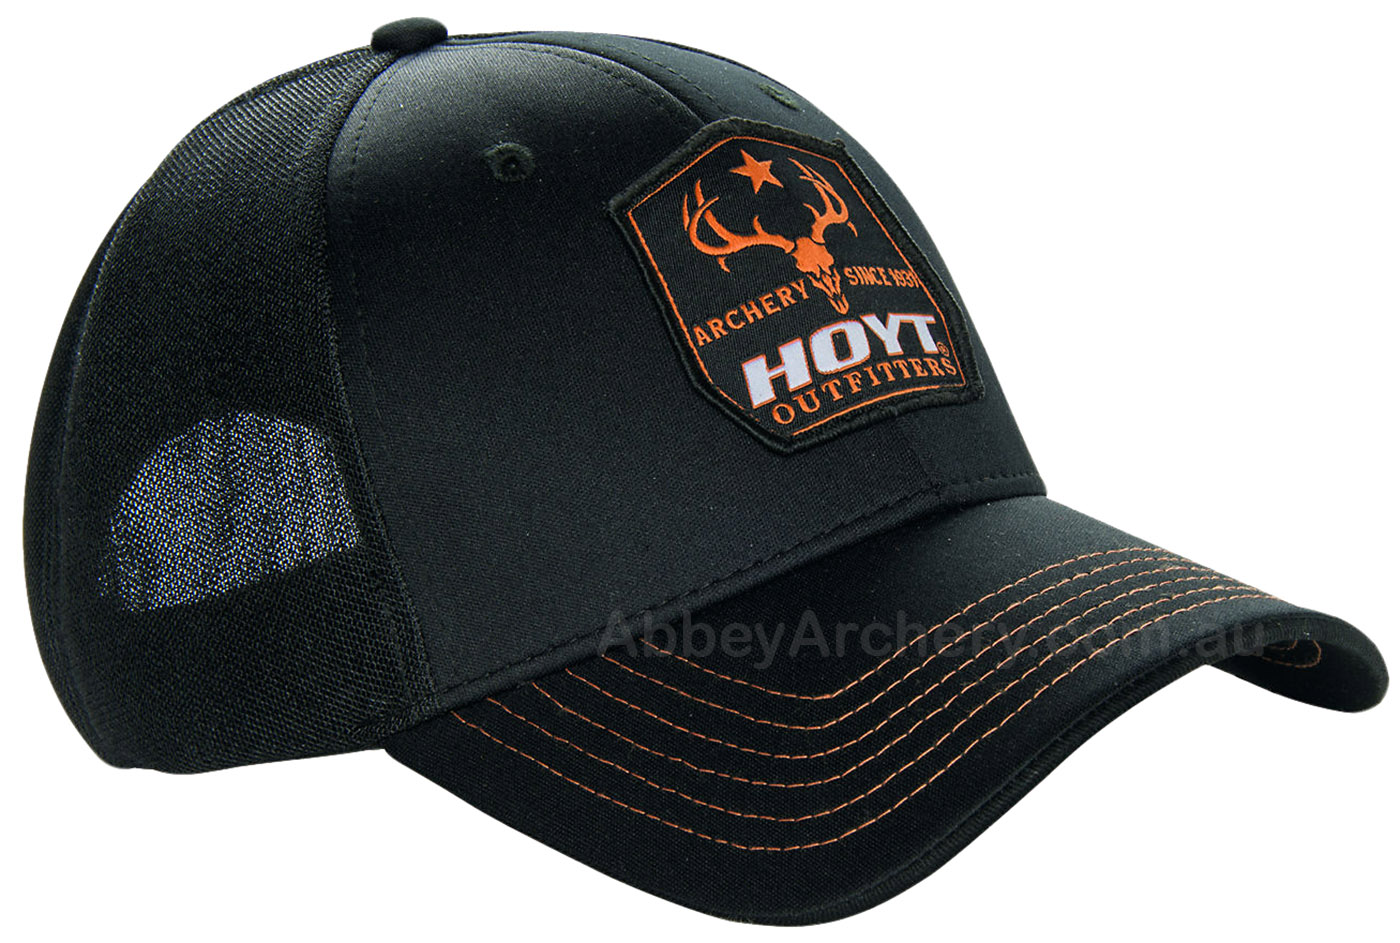 Hoyt Outfitter Cap Soft Touch Orange large.jpg 0a99cdfd149